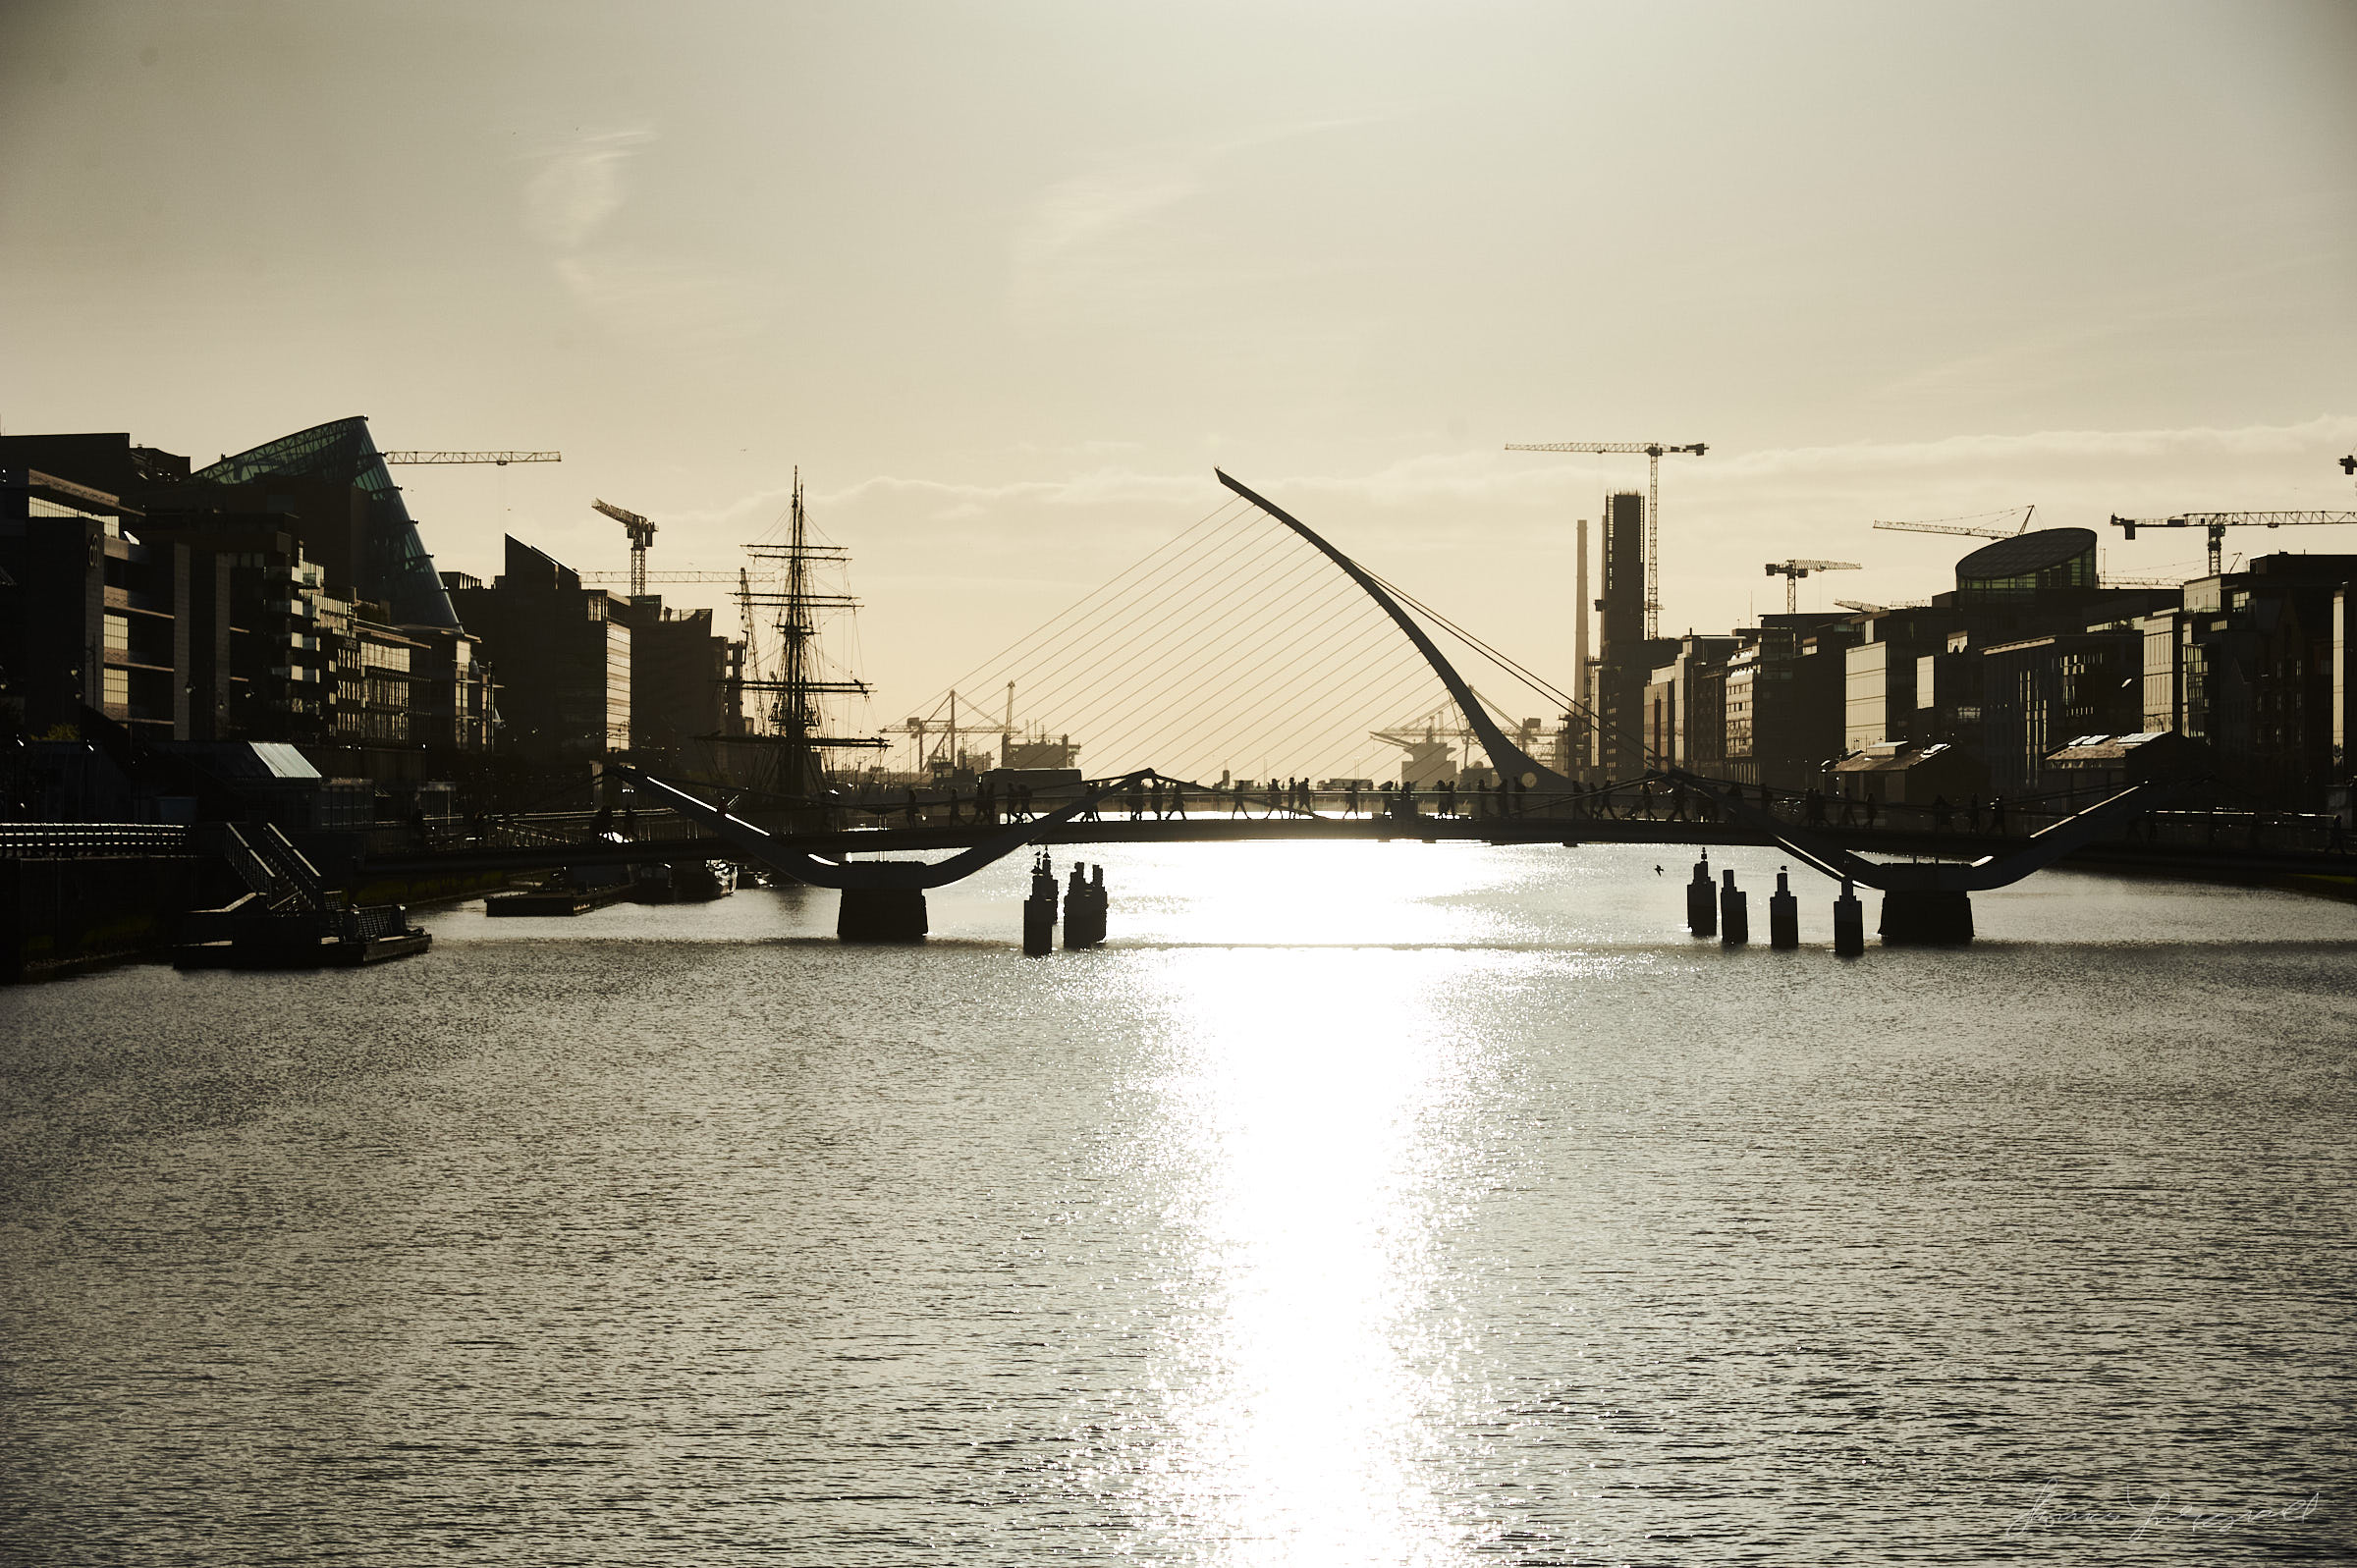 The liffey and bridges in the morning golden light